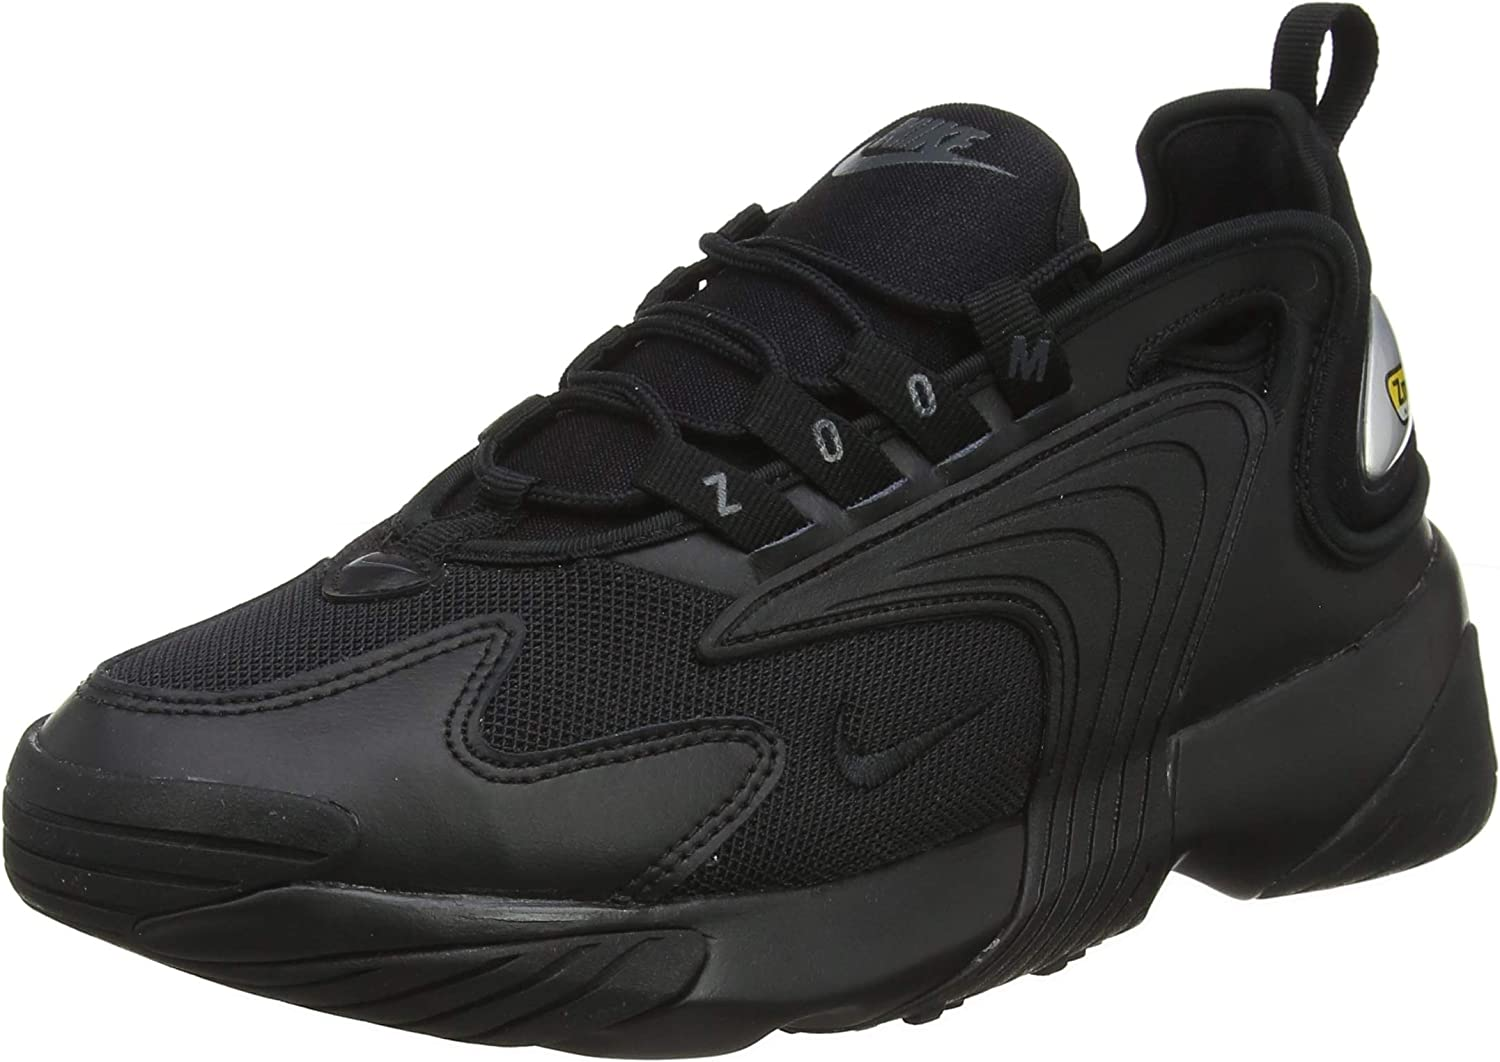 Nike Men's Zoom 2K Running shoes, Black Black Anthracite, Size 10